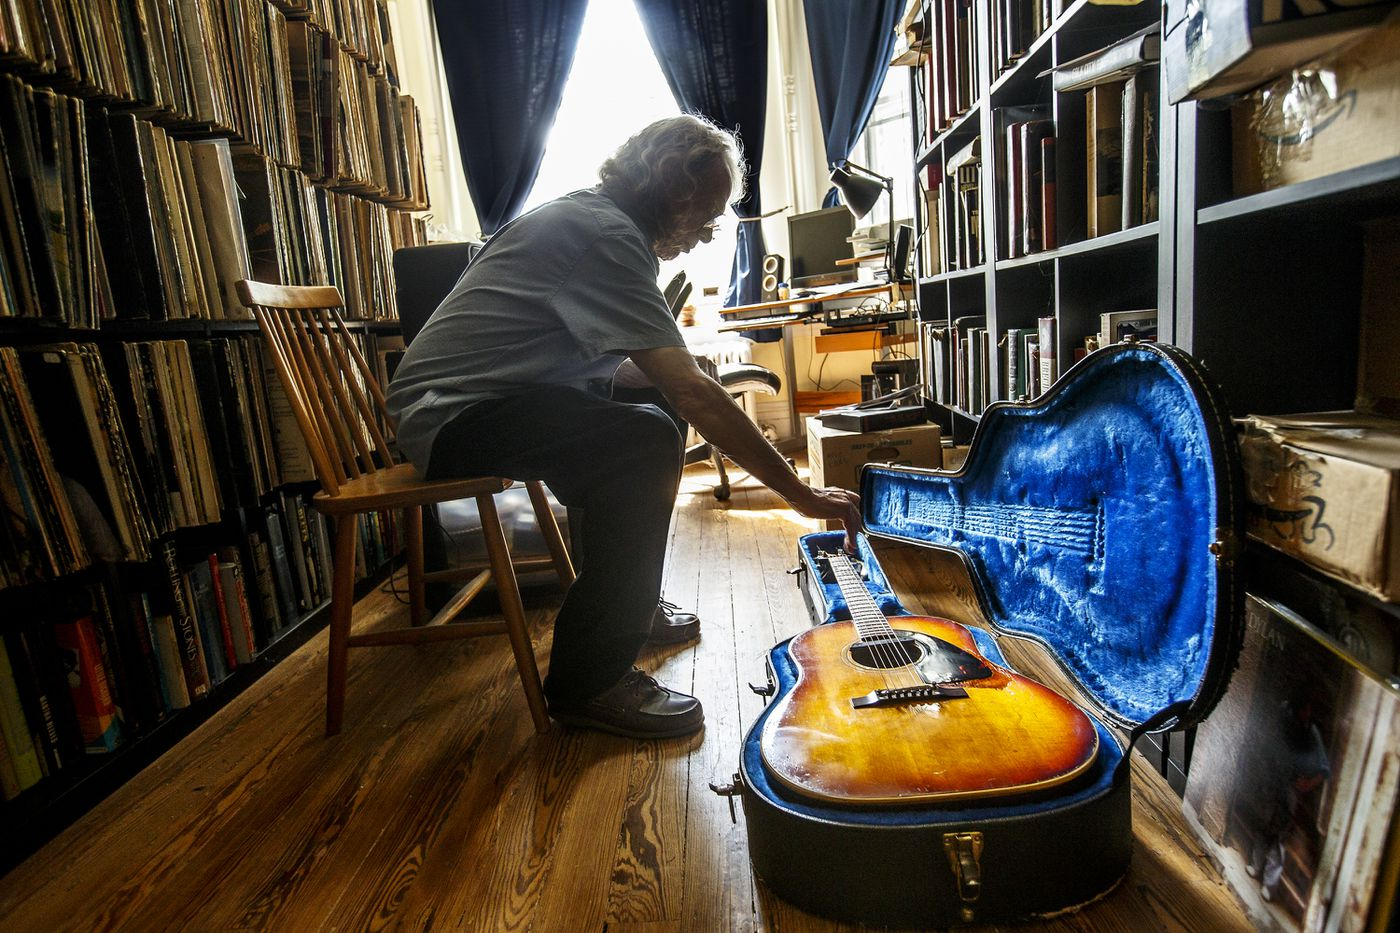 Peter Stone Brown, a mainstay on the Philly music scene, reaches for his 1965 Epiphone Texan guitar at his residence in West Mount Airy.